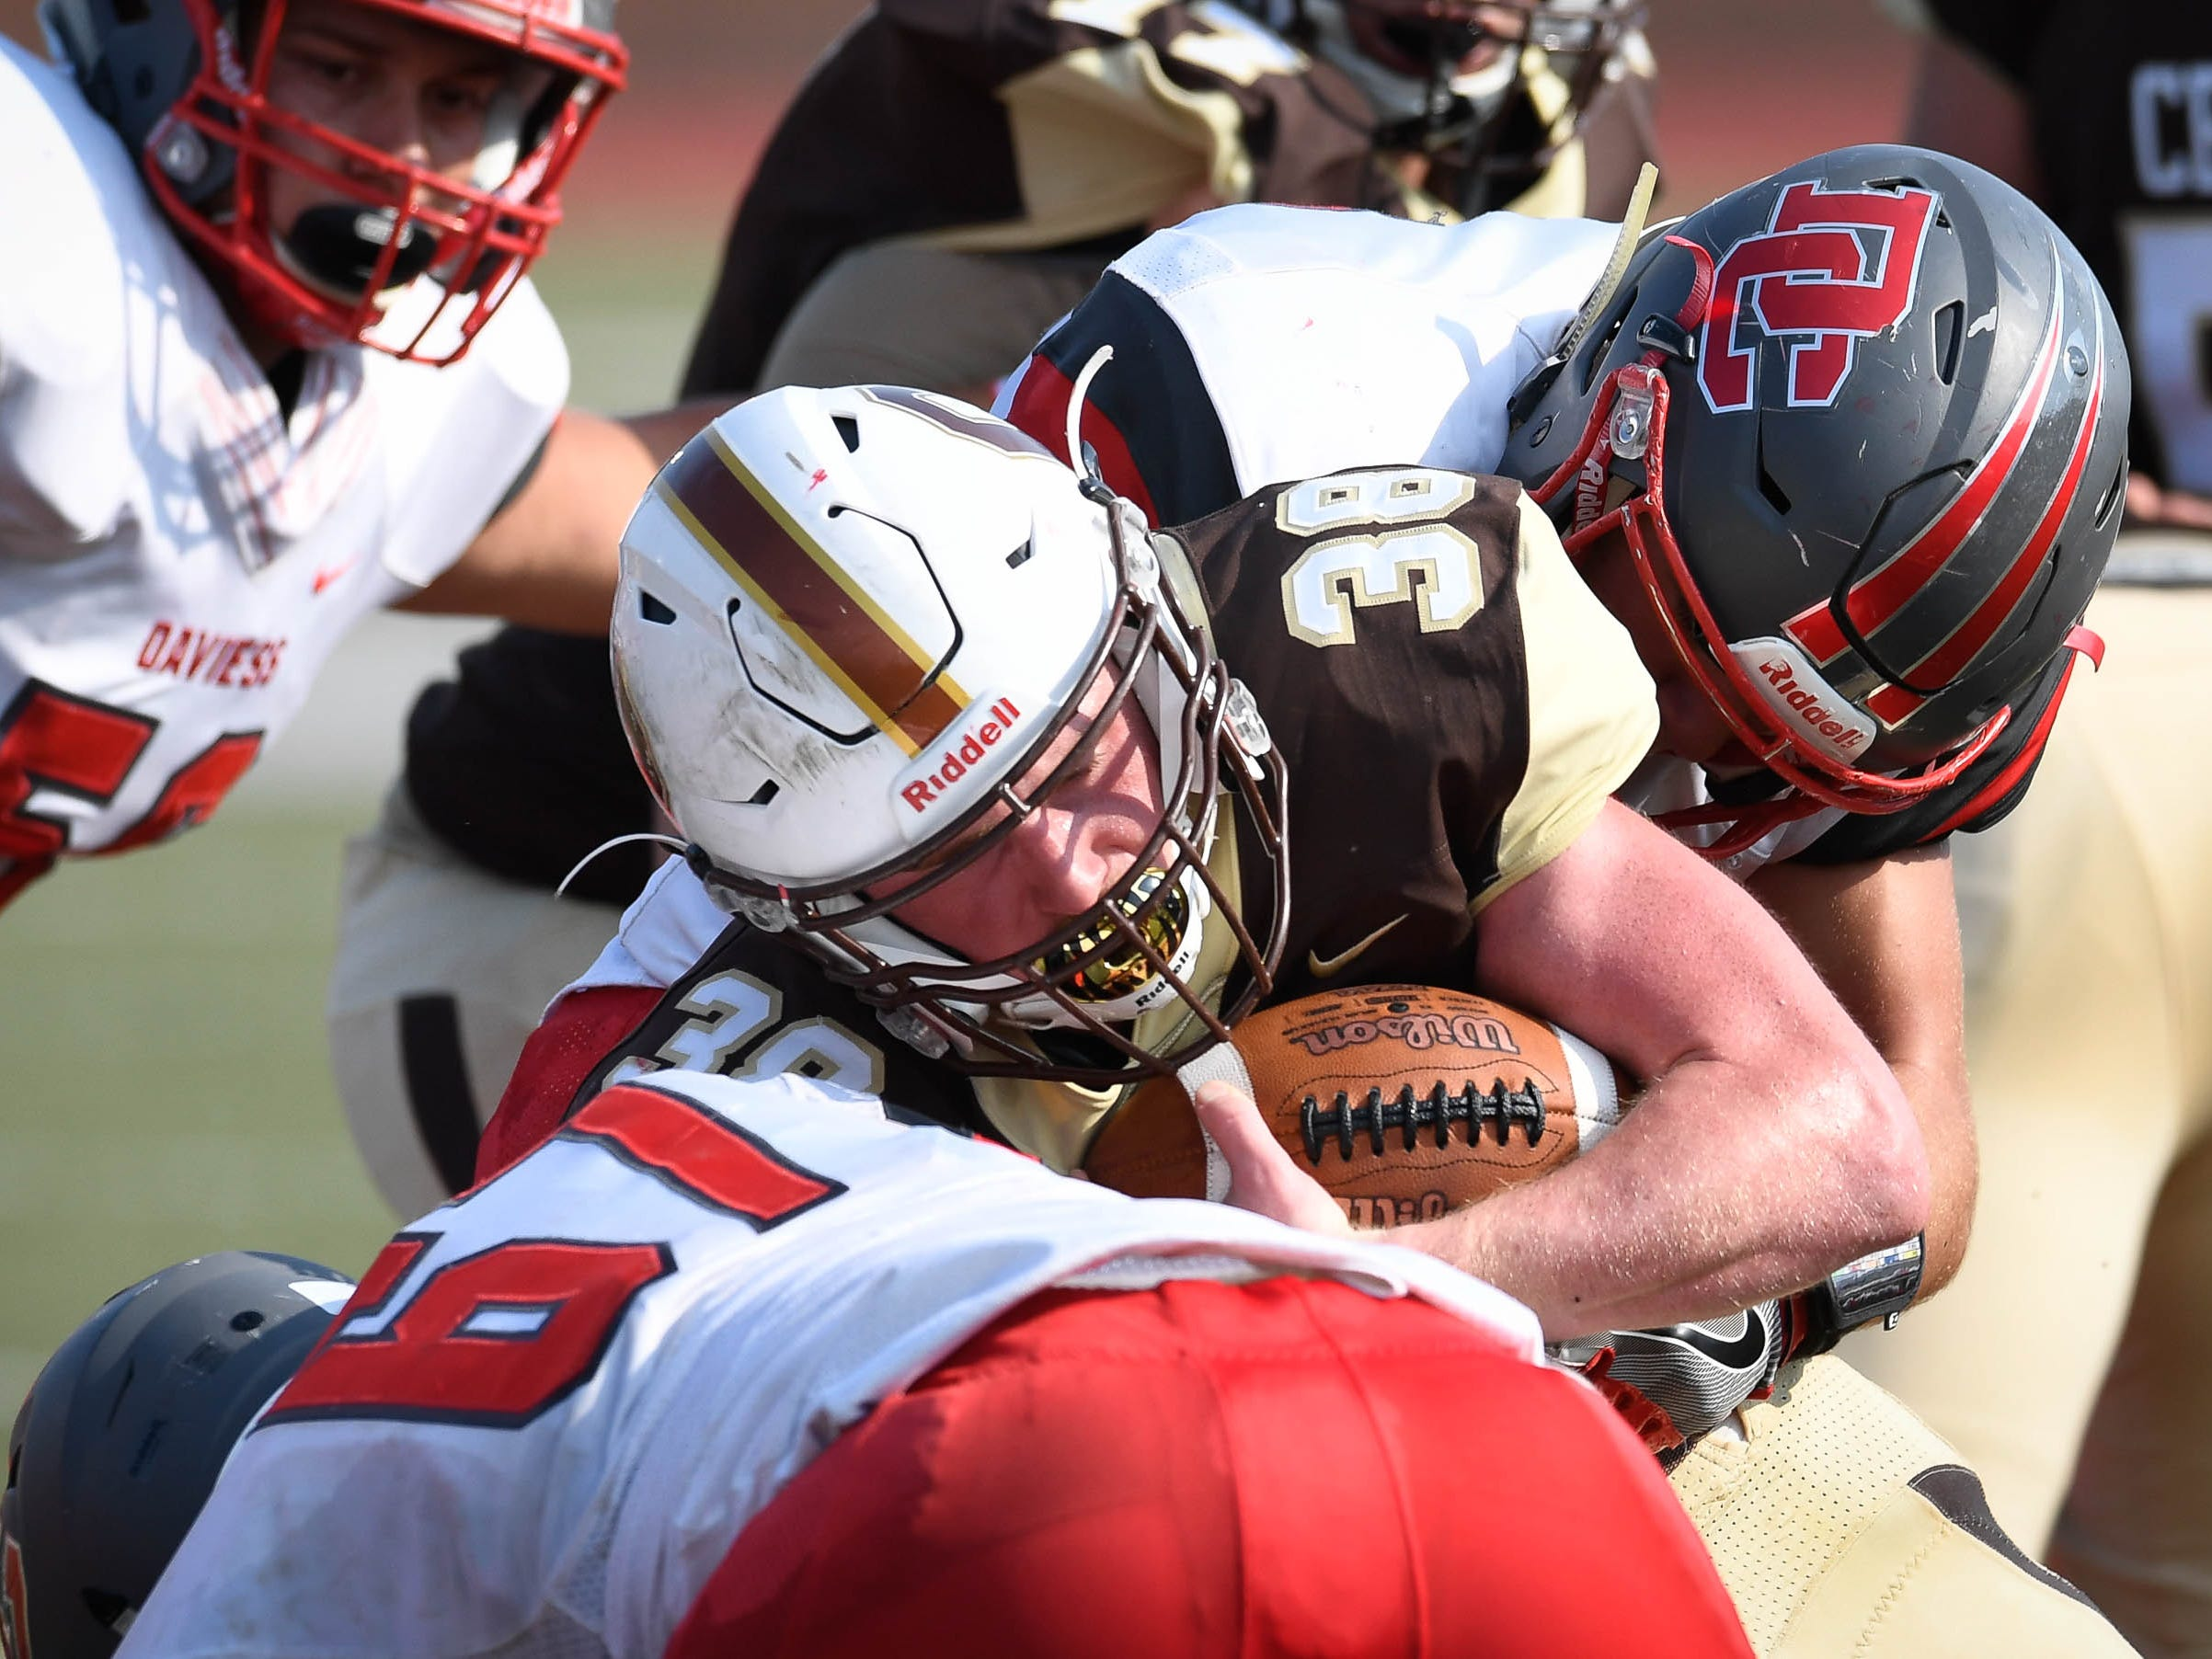 Central's Brennan Schutte (38) pushes against Daviess County's Cameron Duvall (67) as the Daviess County Panthers play the Evansville Central Bears at the Border Bowl played at Enlow Field in Evansville Saturday, August 25, 2018.